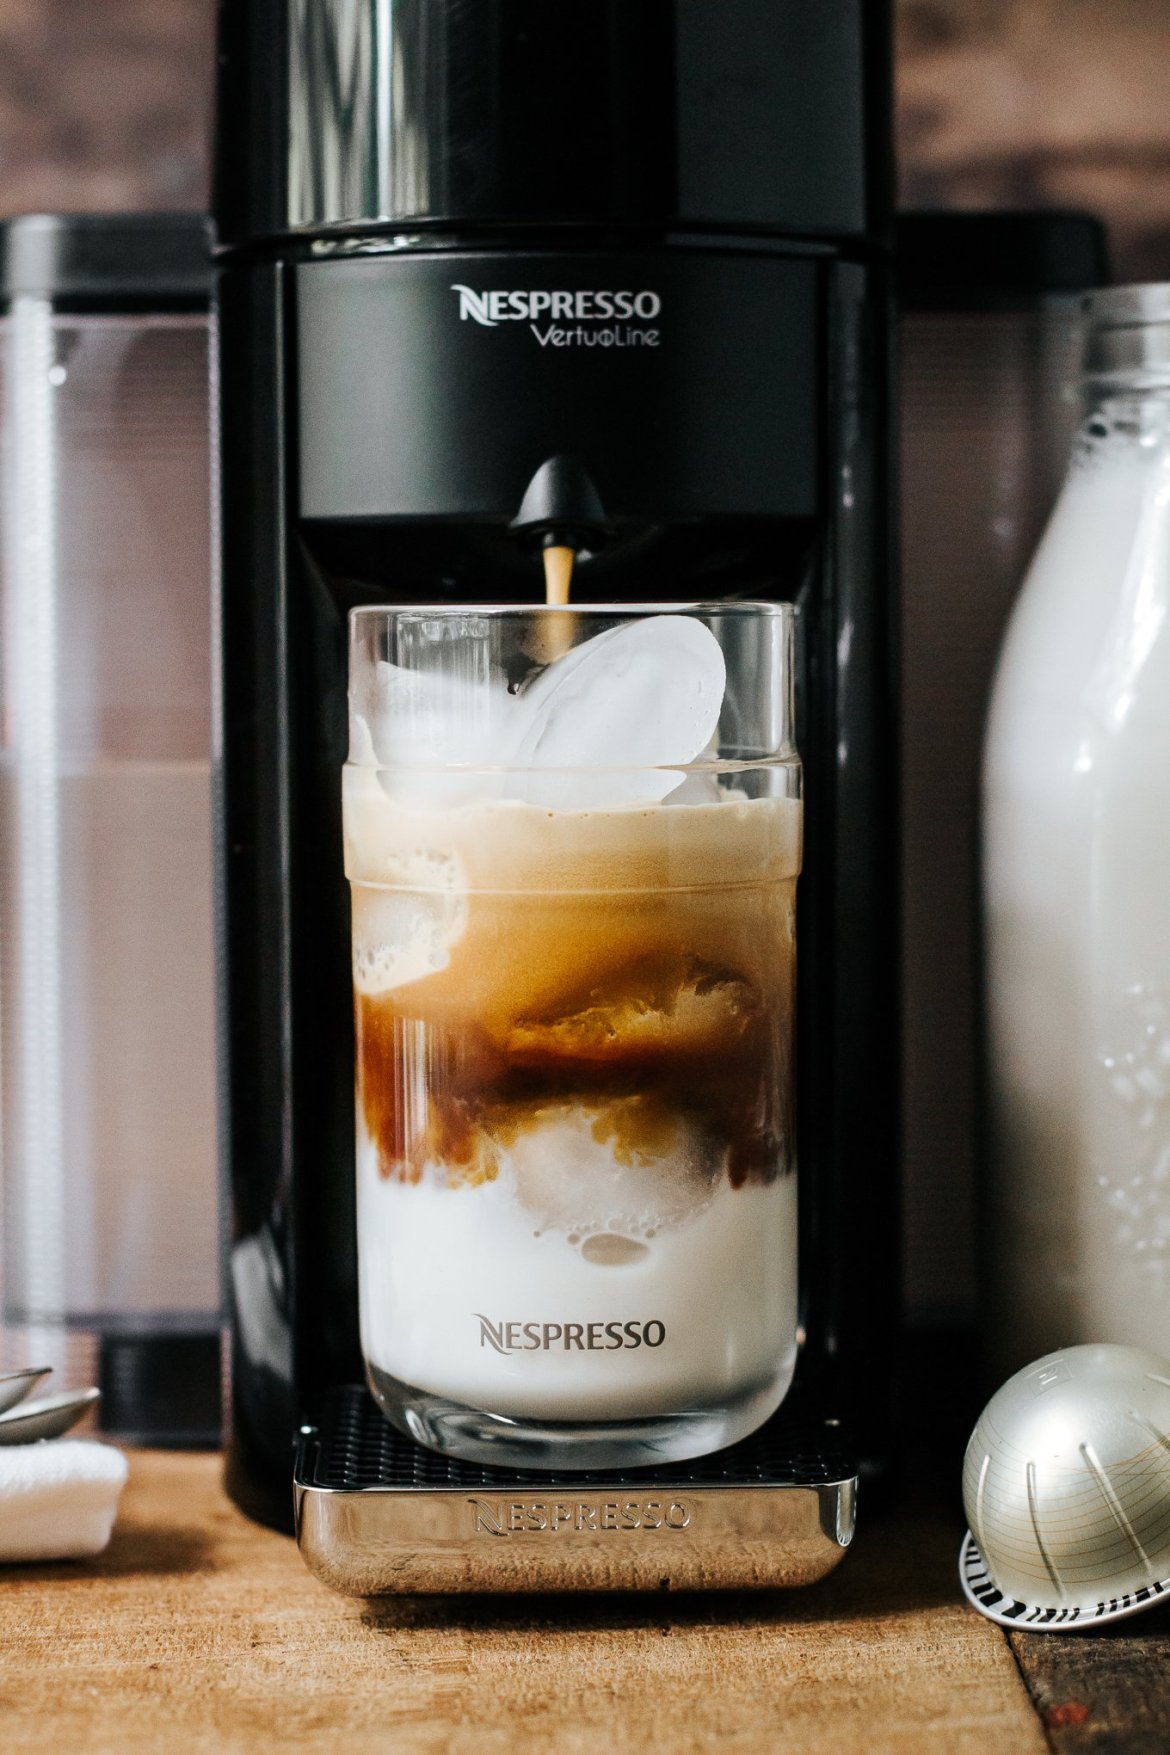 nepresso, iced coffee, how to make iced coffee at home, lifestyle blog, coffee blog